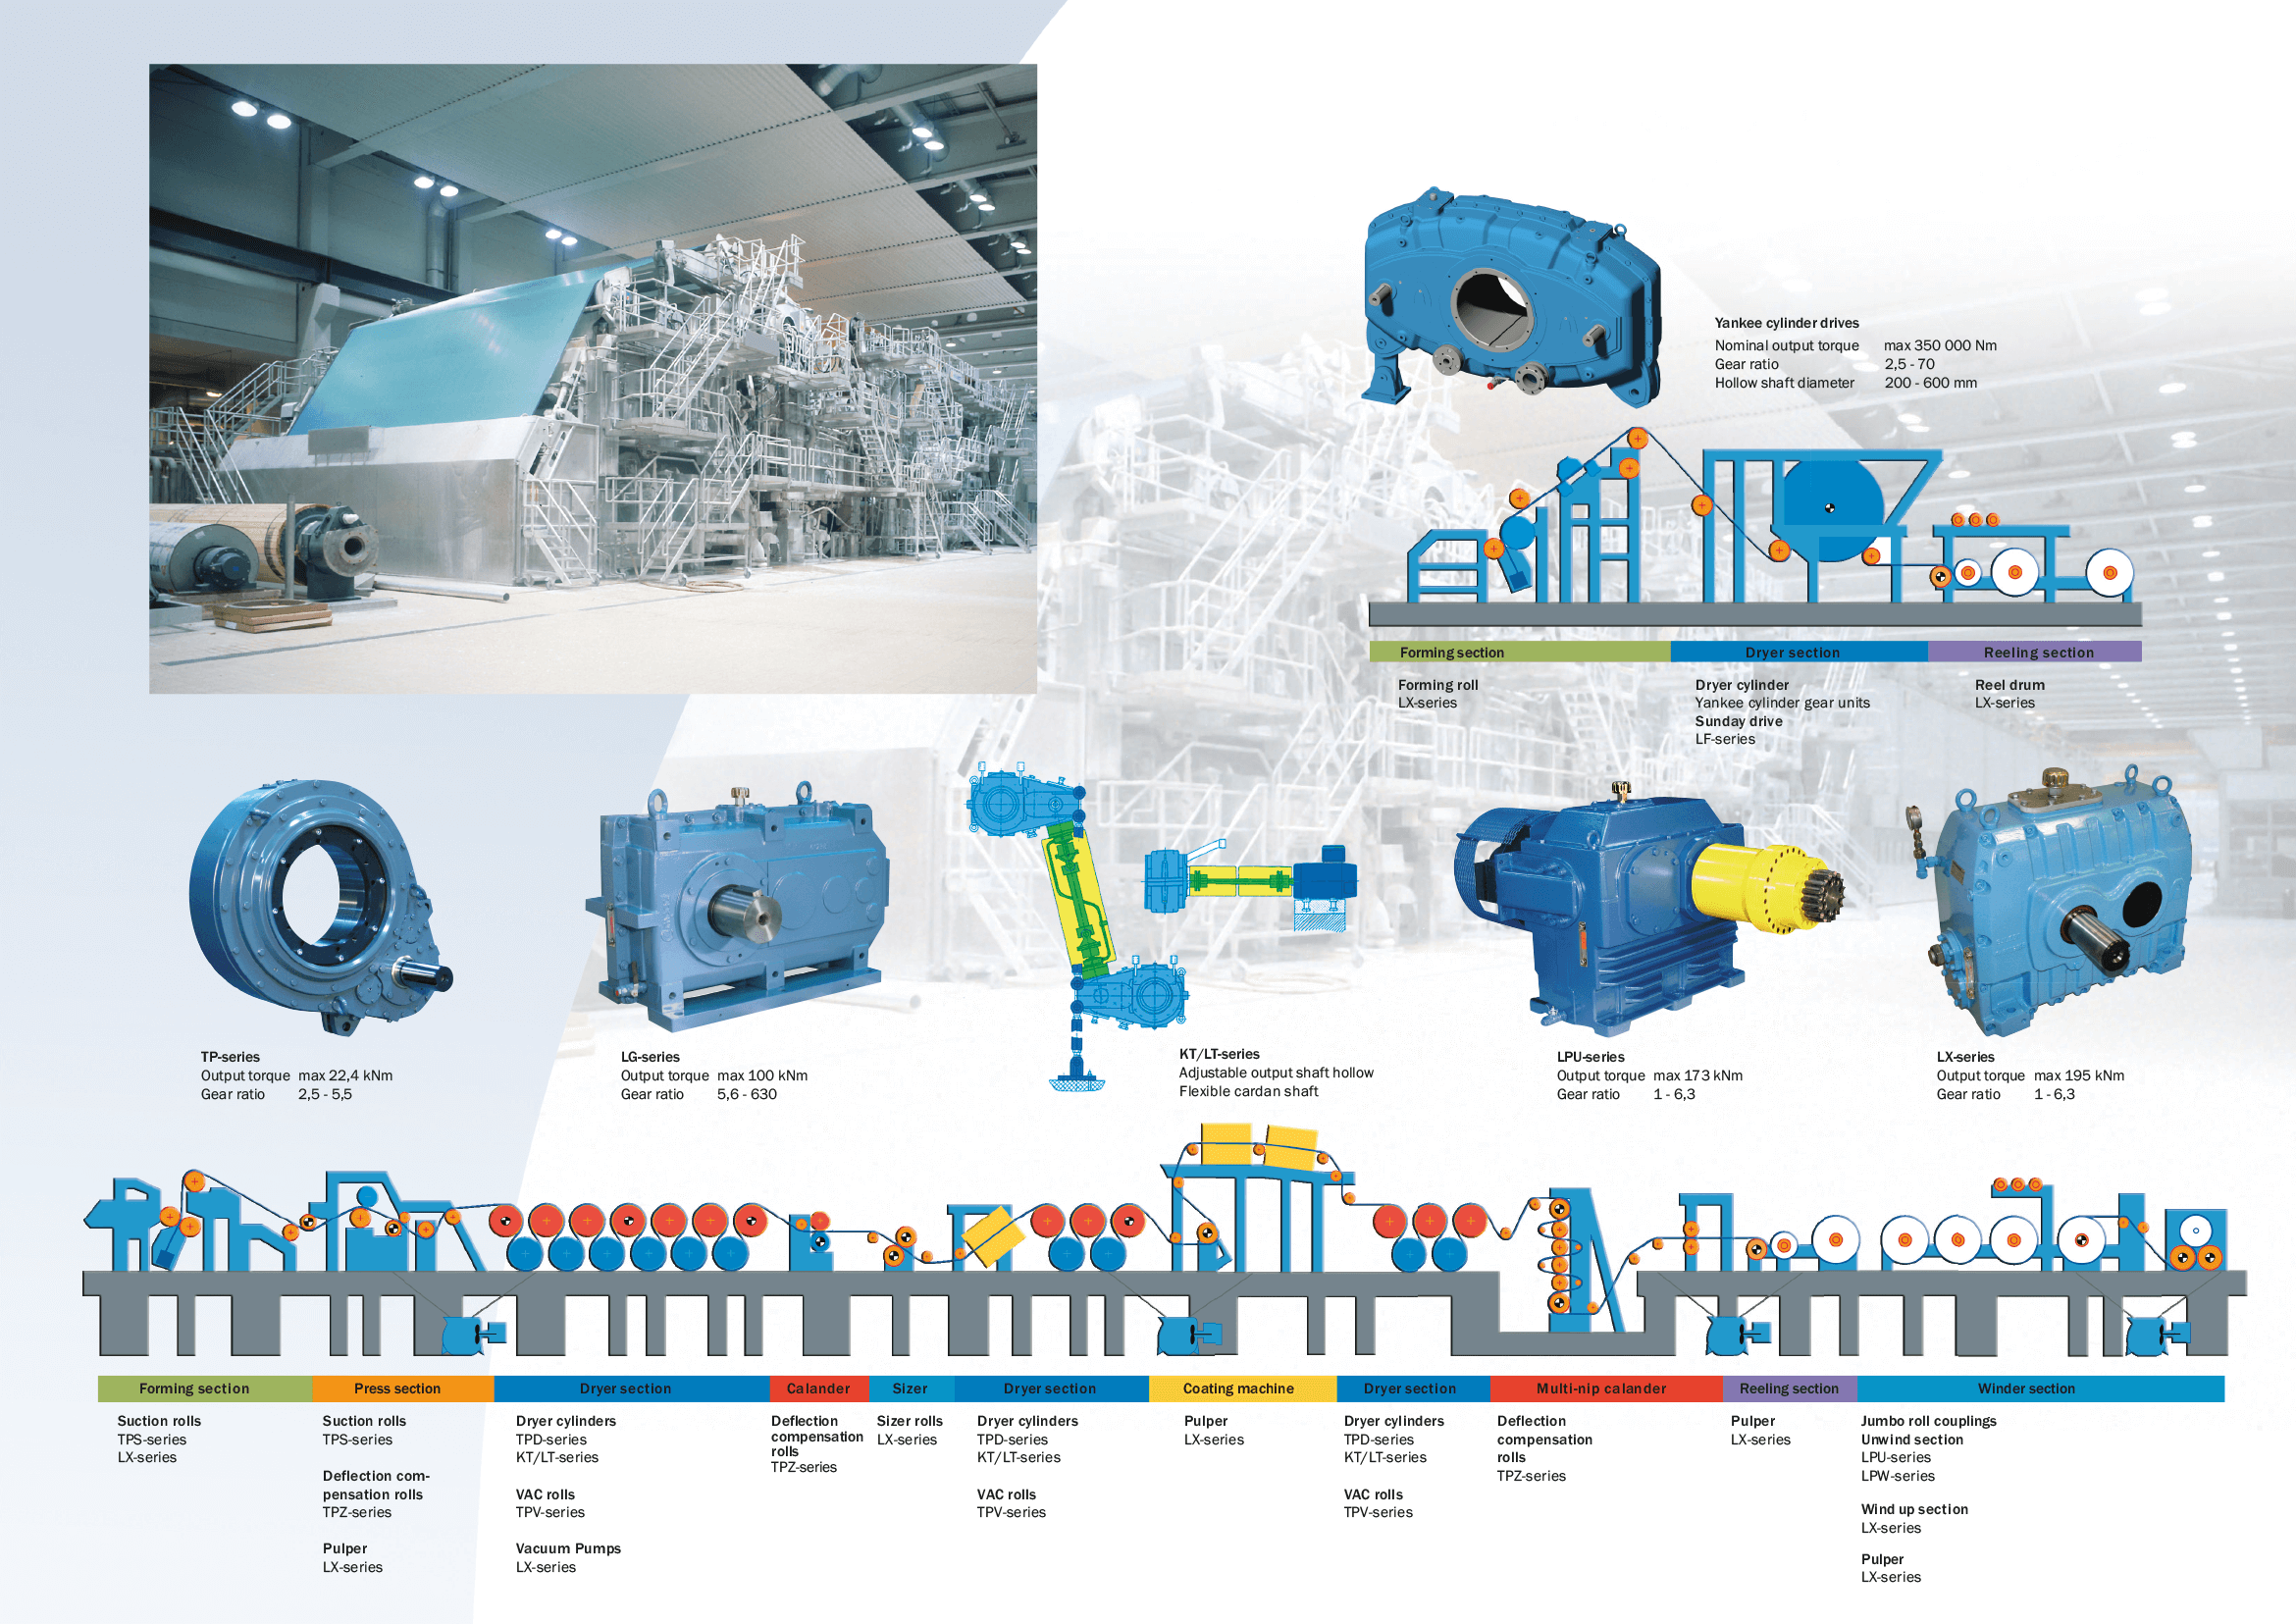 Kumera Drives for Pulp & Paper and Wood Yards. Kumera offers the world class solutions for all wood, pulp and paper processing industry applications. Starting from small conveyor drives to the largest high power chippers and customized integrated roll drives.